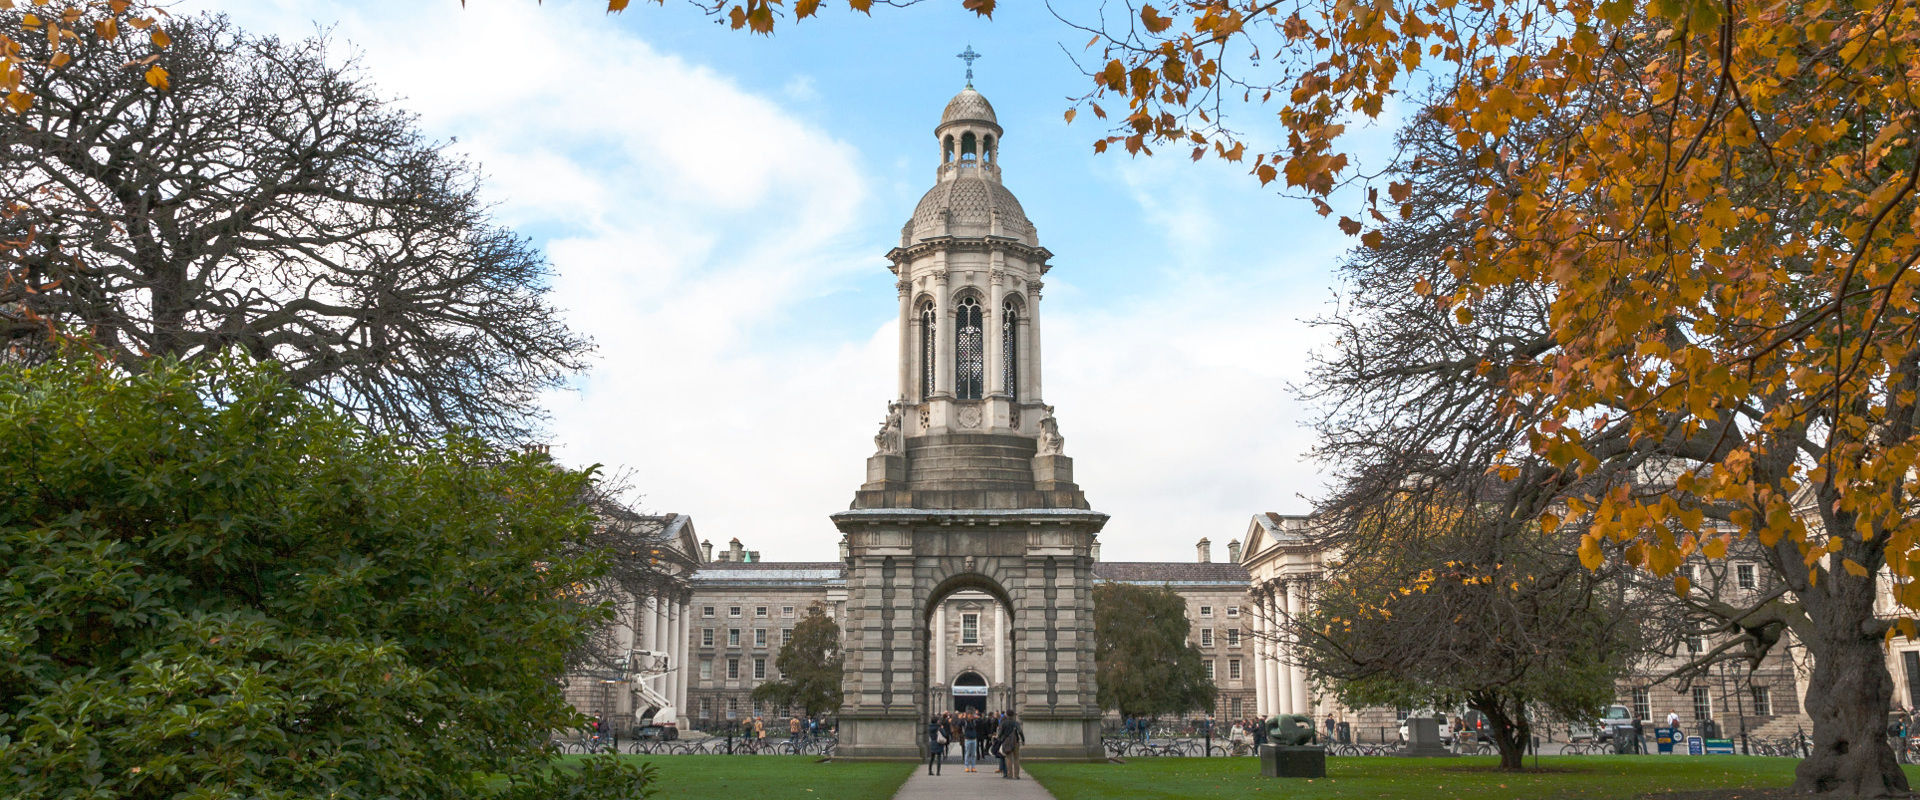 The top 9 best universities in Ireland: 2019 rankings | Study EU